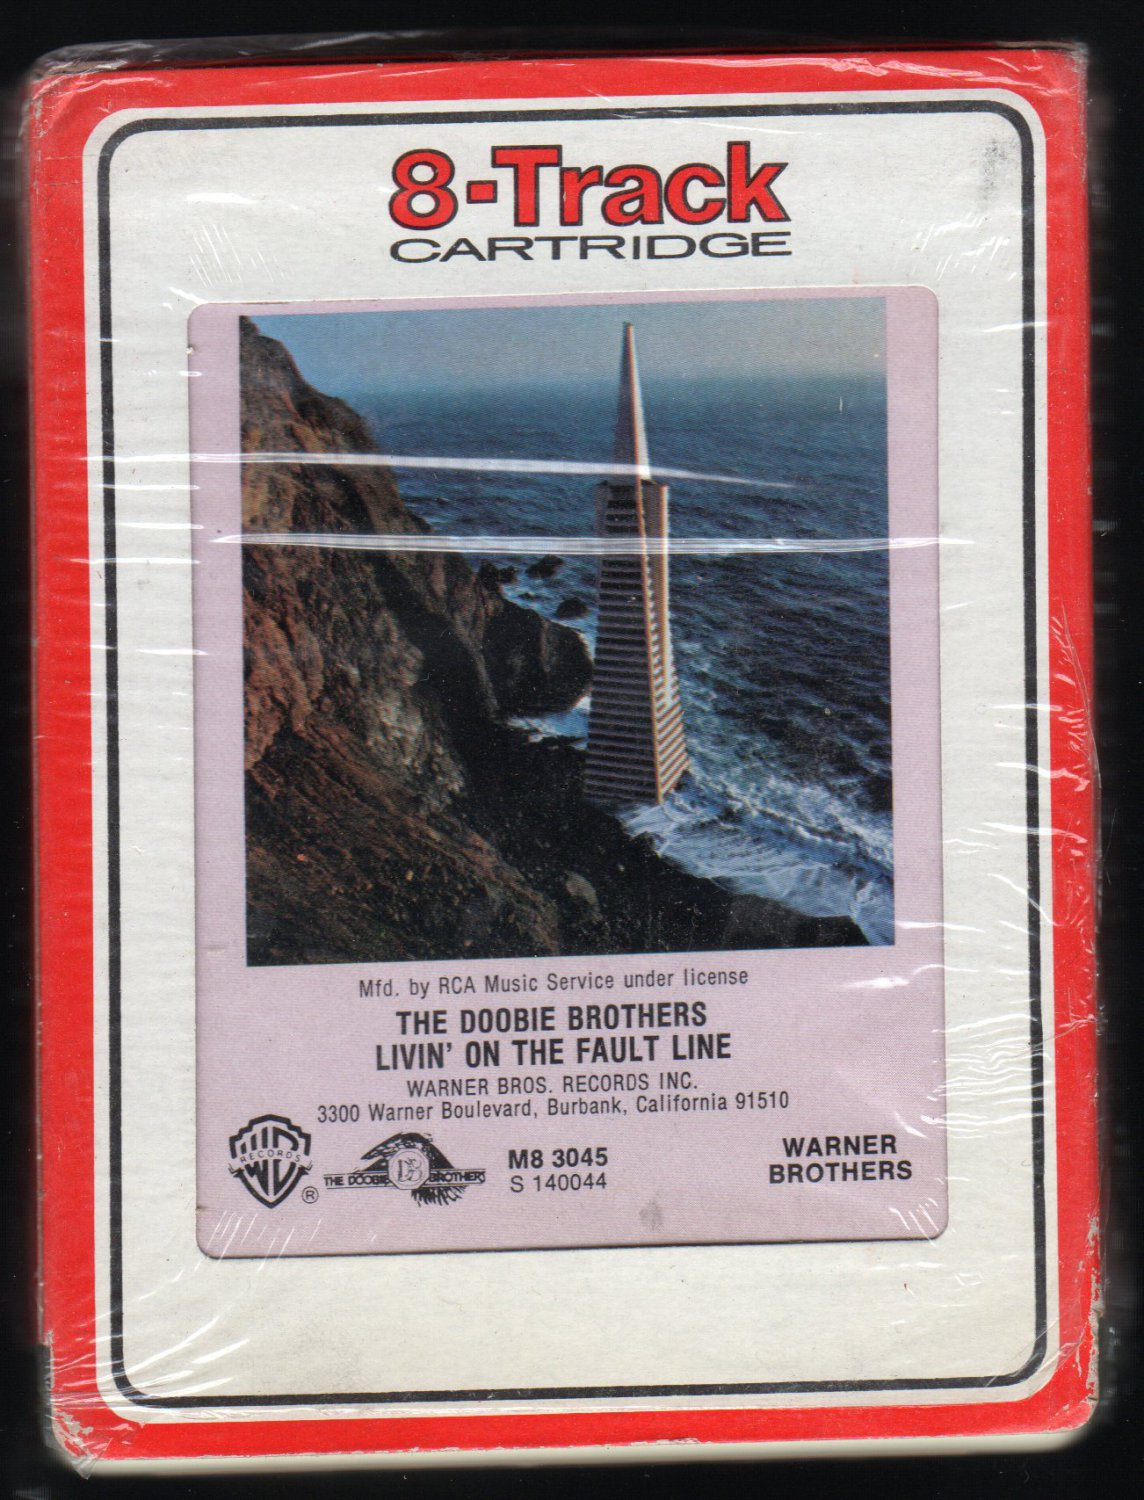 The Doobie Brothers - Livin' On The Fault Line 1977 RCA WB A42 8-TRACK TAPE